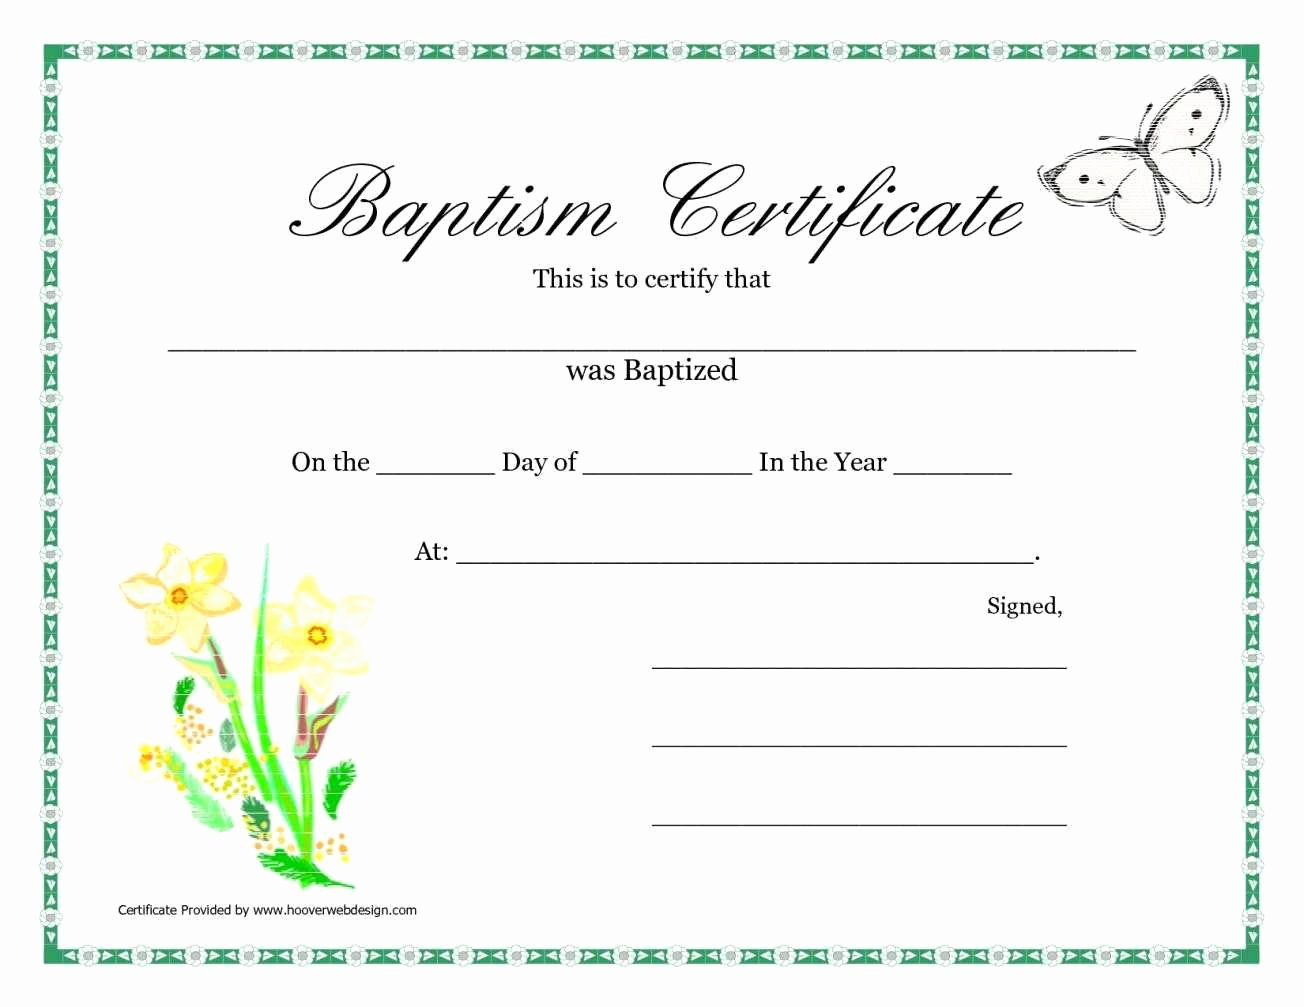 Baptism Certificate Free Template New Sample Baptism Certificate Templates